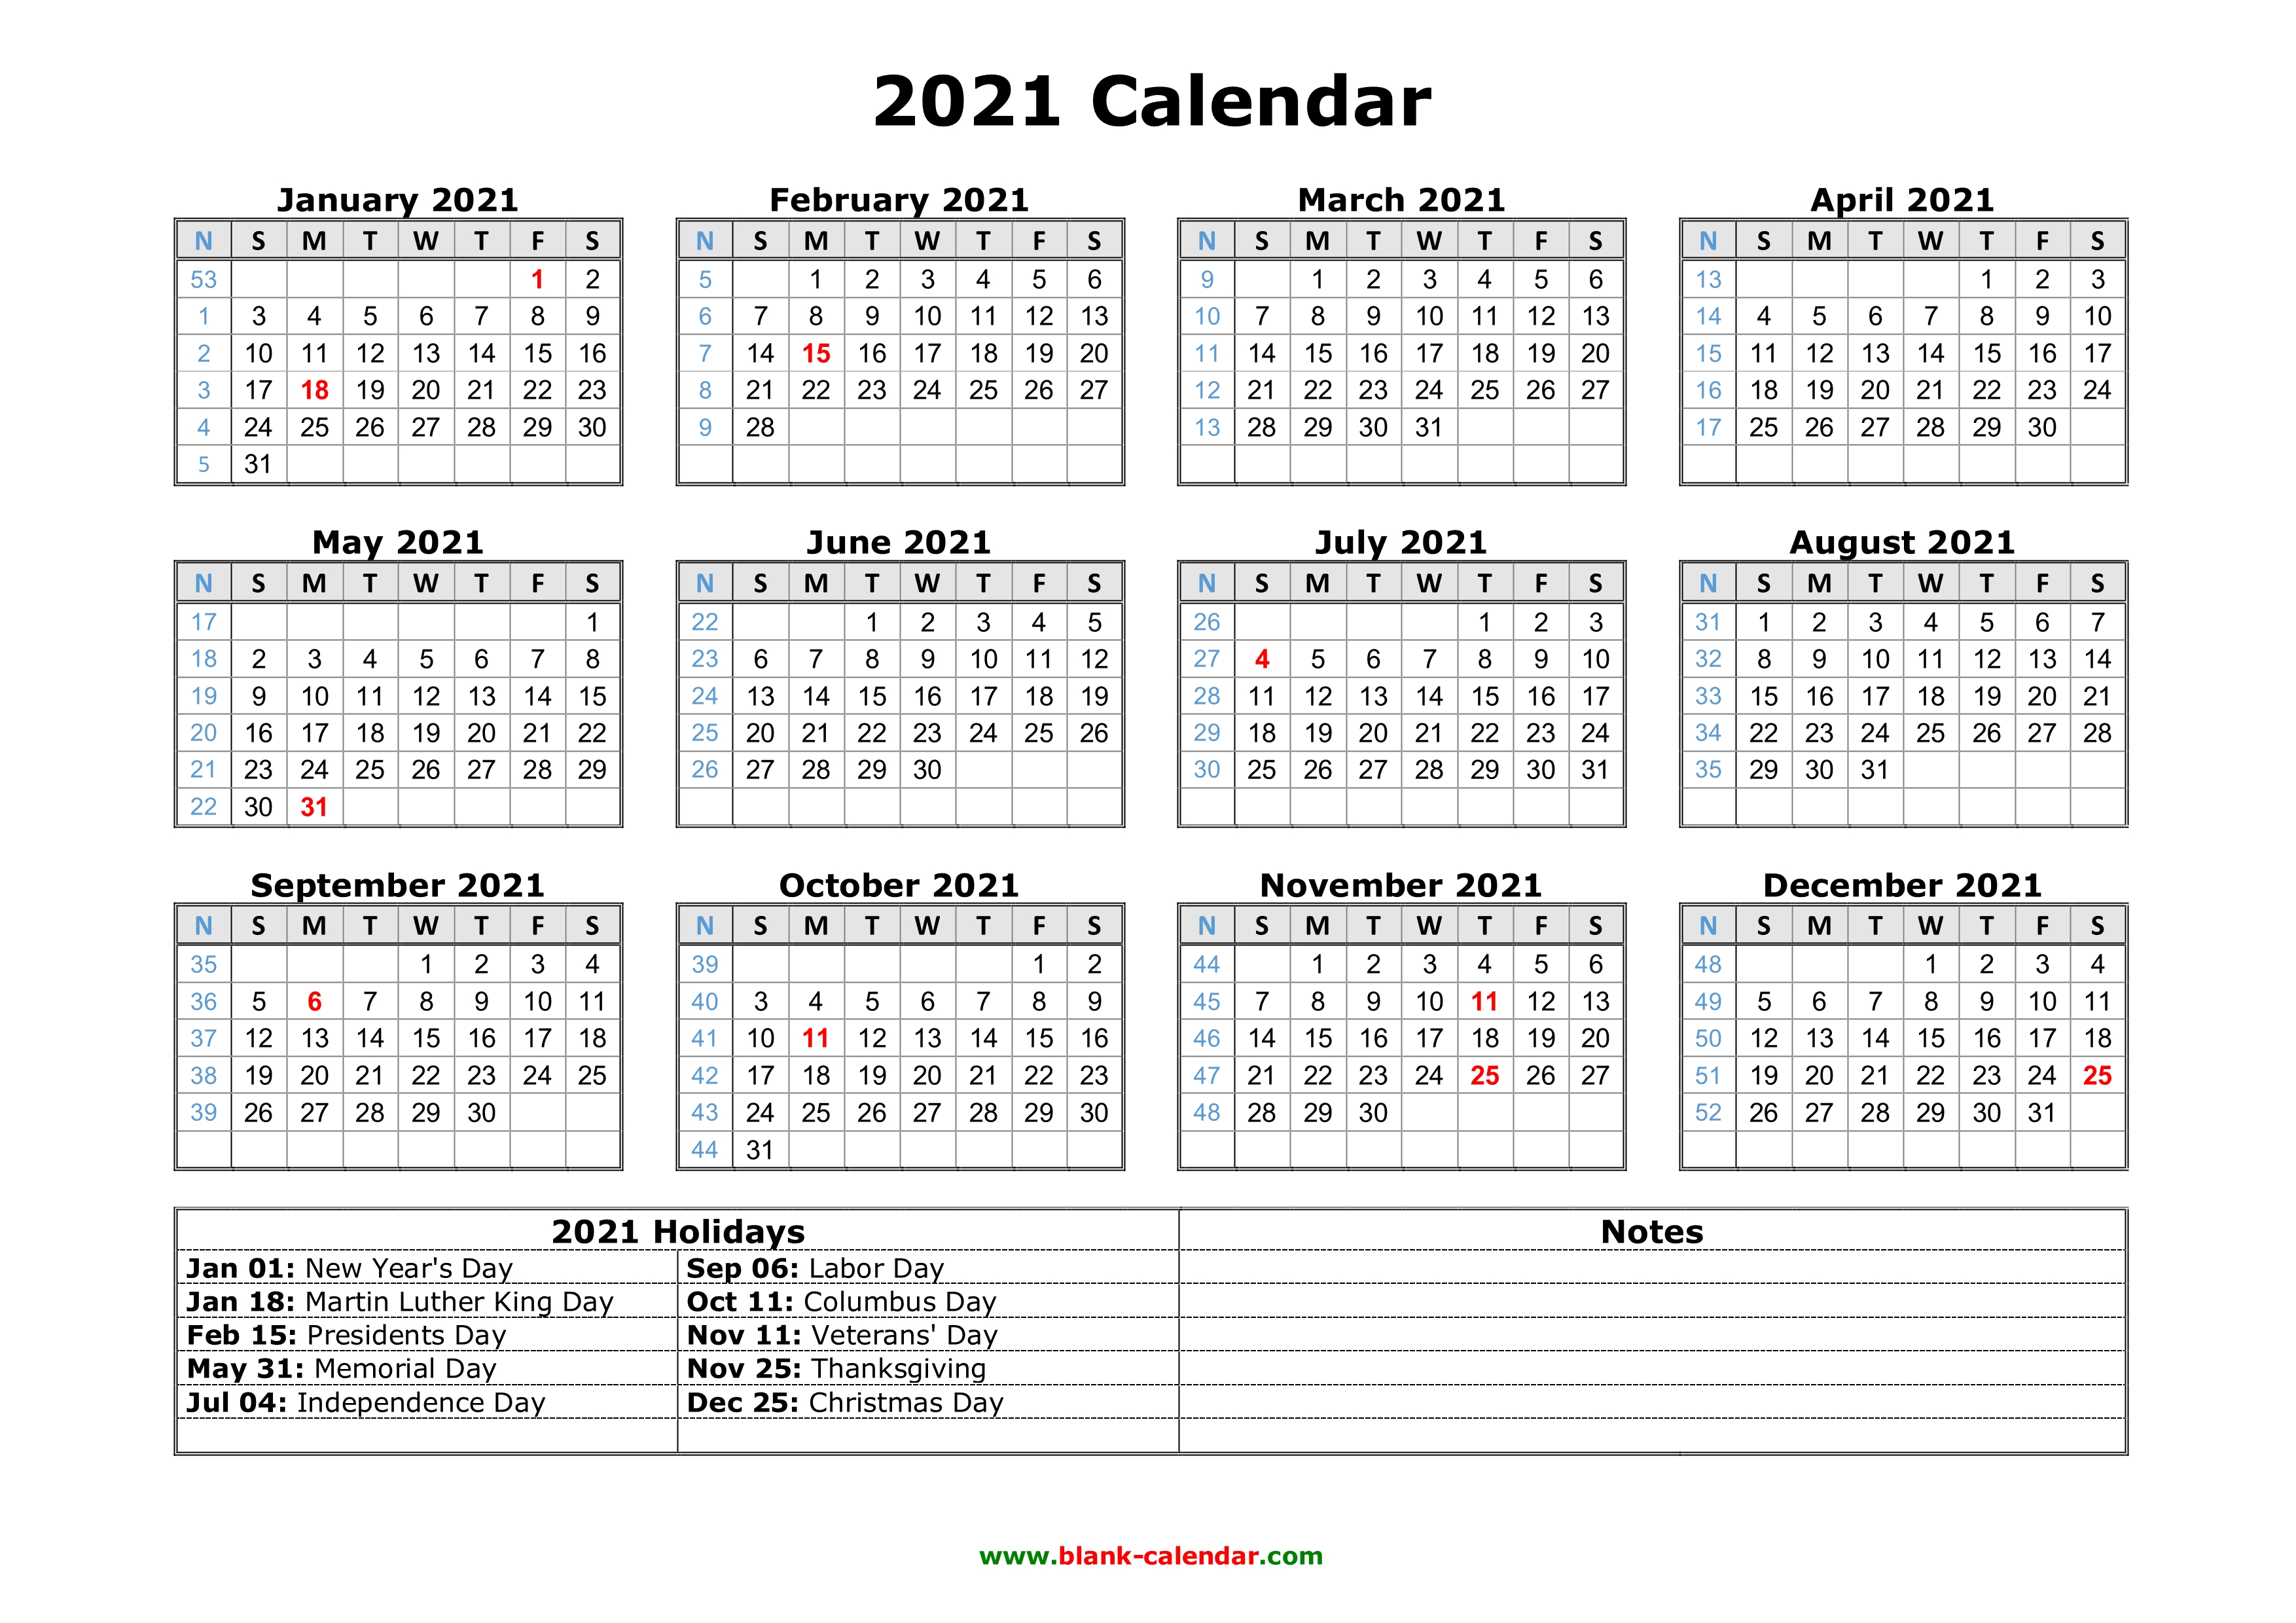 Calendar For 2021 With Holidays And Ramadan - swankheight